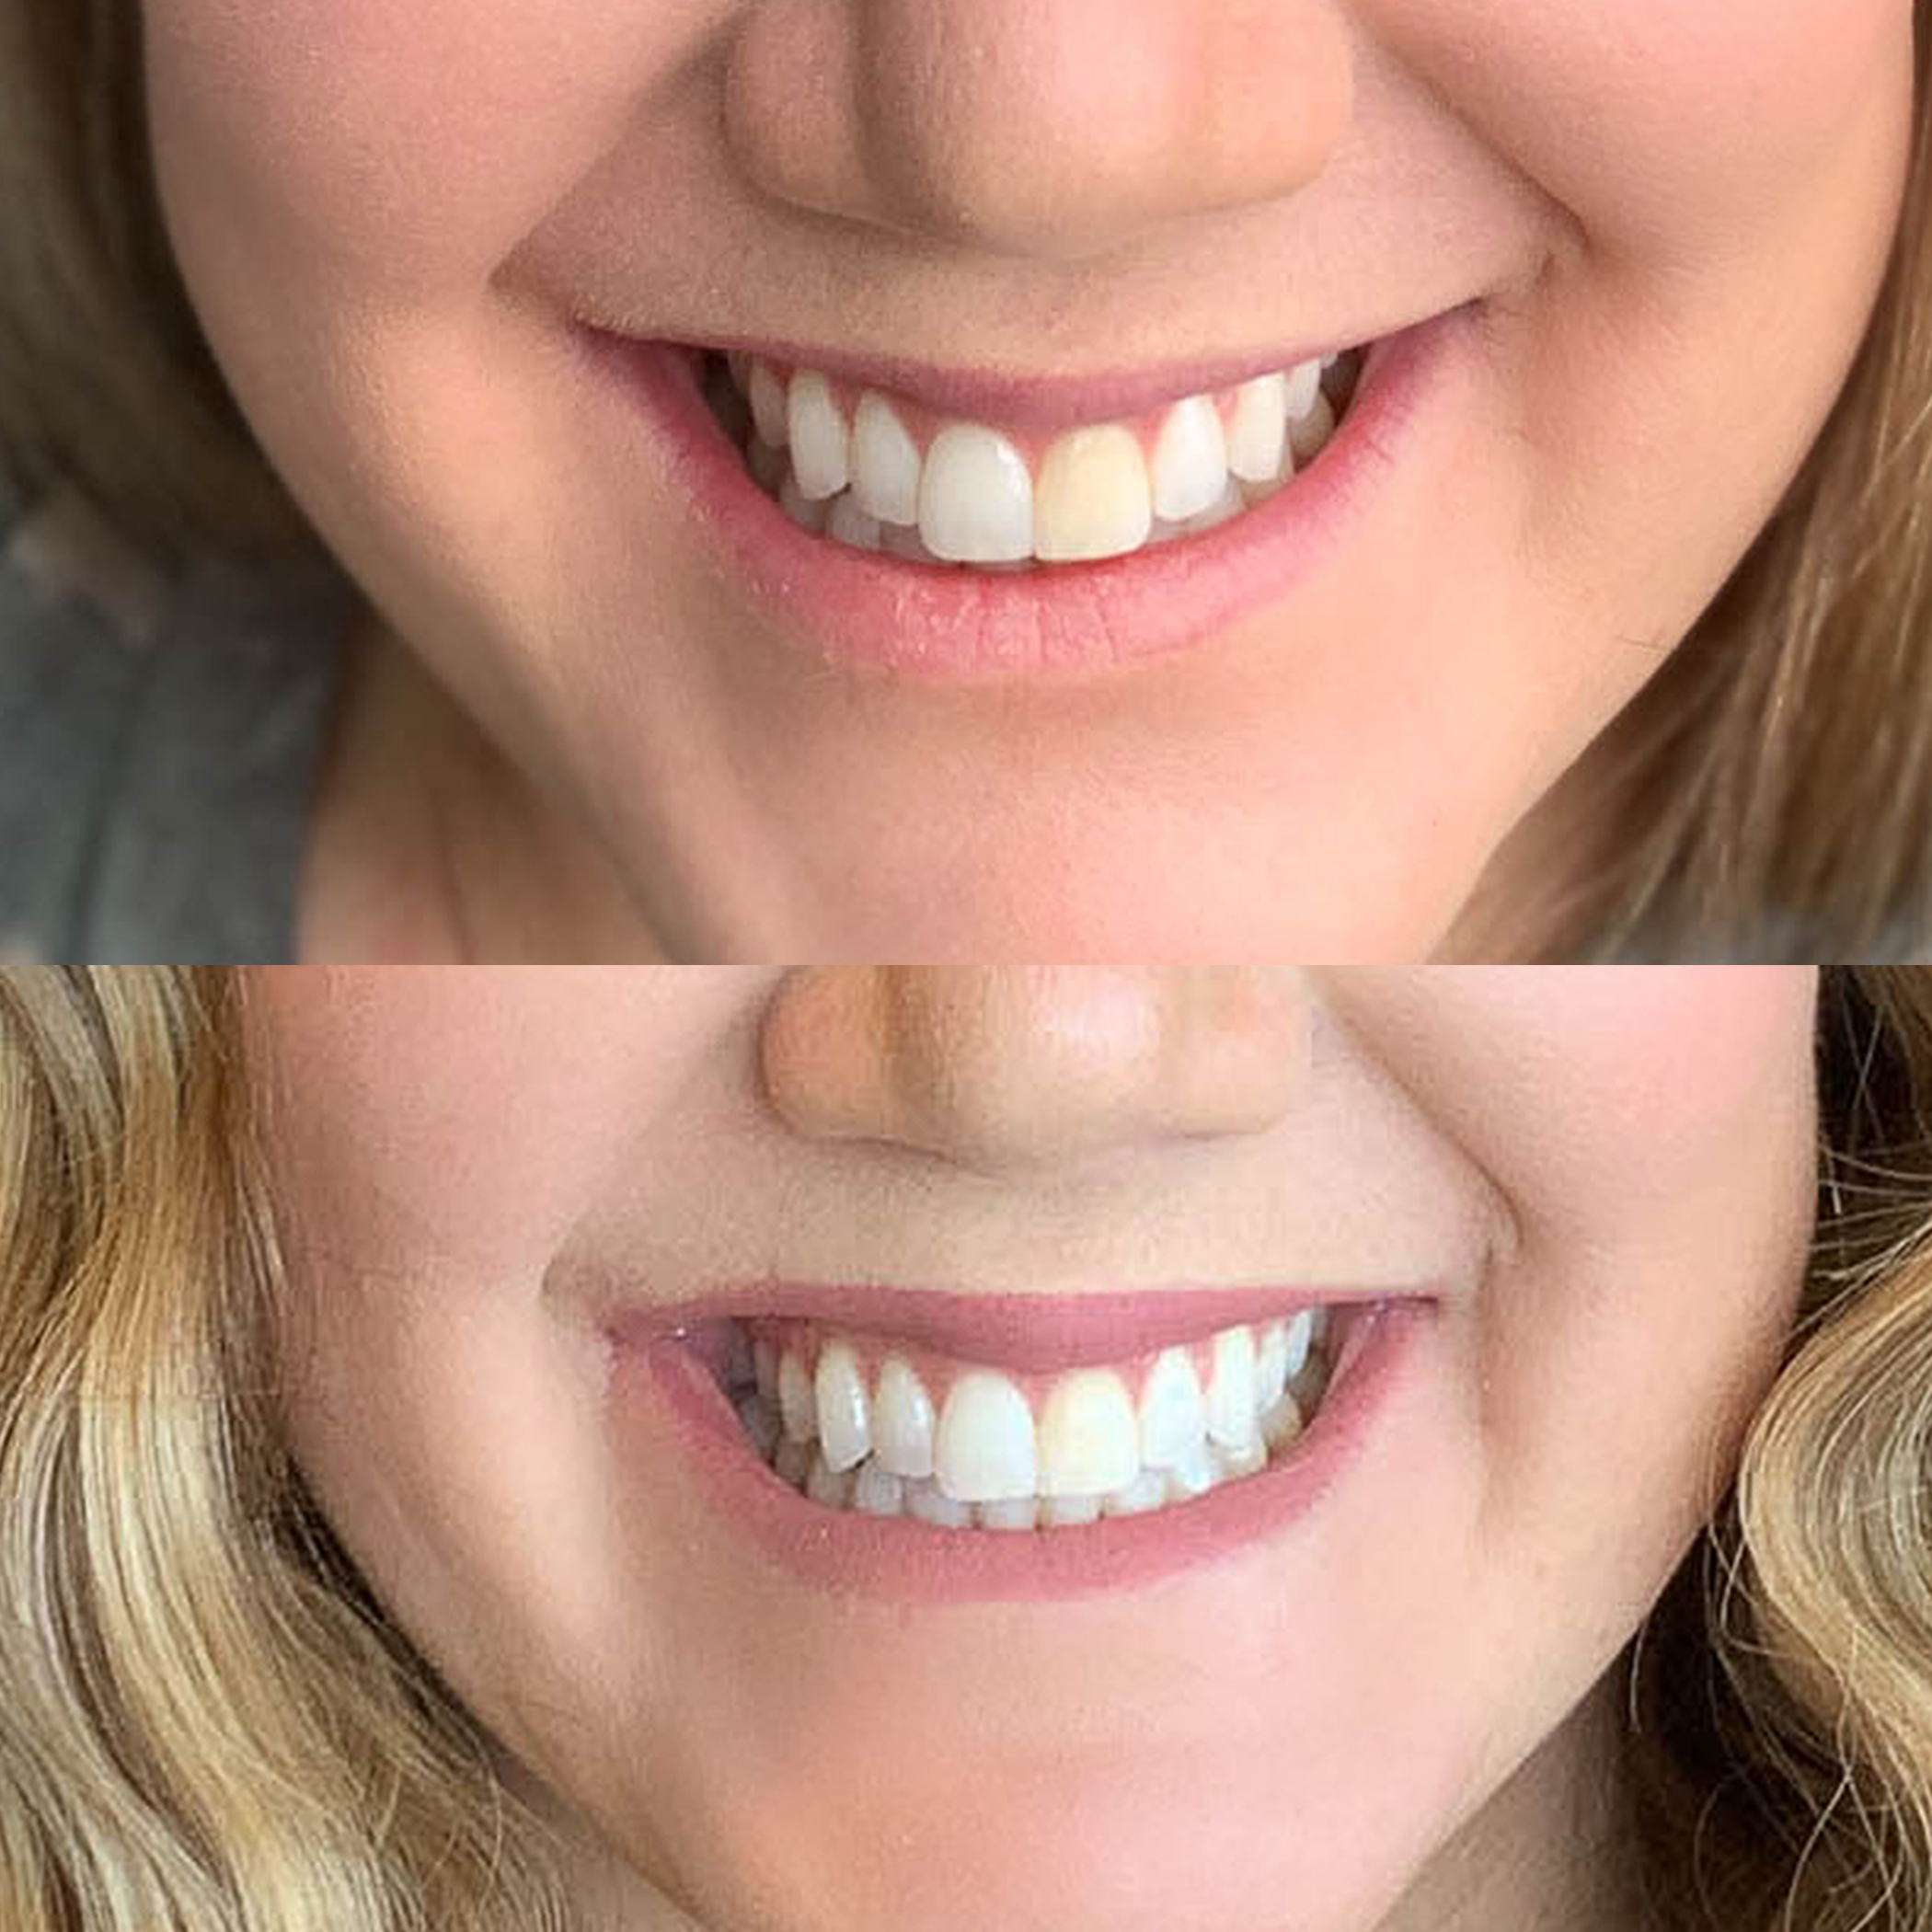 Crest 3d Whitestrips 14 Day Challenge Results All Things Thrifty